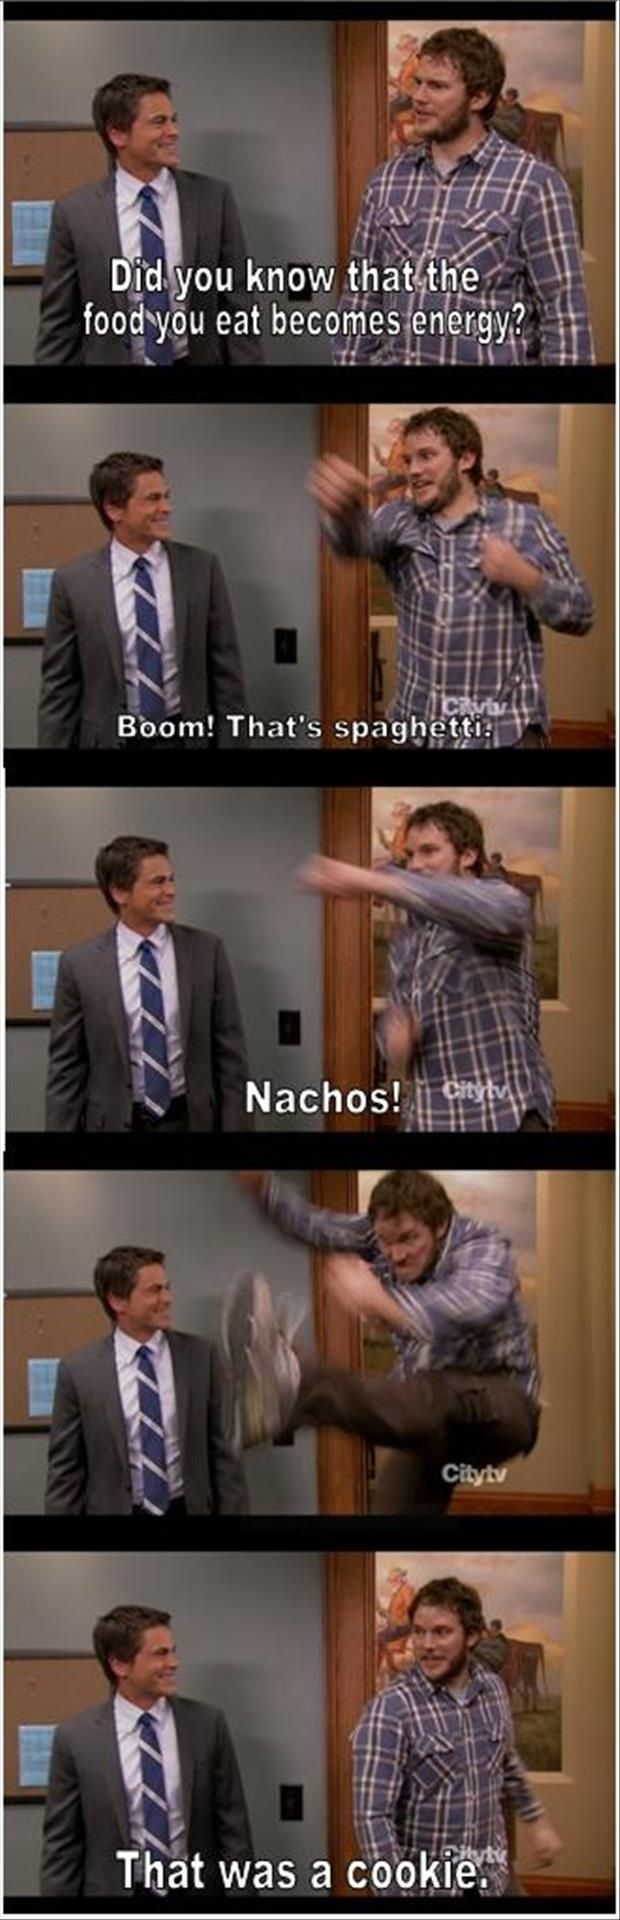 "Chris Pratt as Andy Dwyer on Parks and Recreation. Haha ""that was a cookie"""